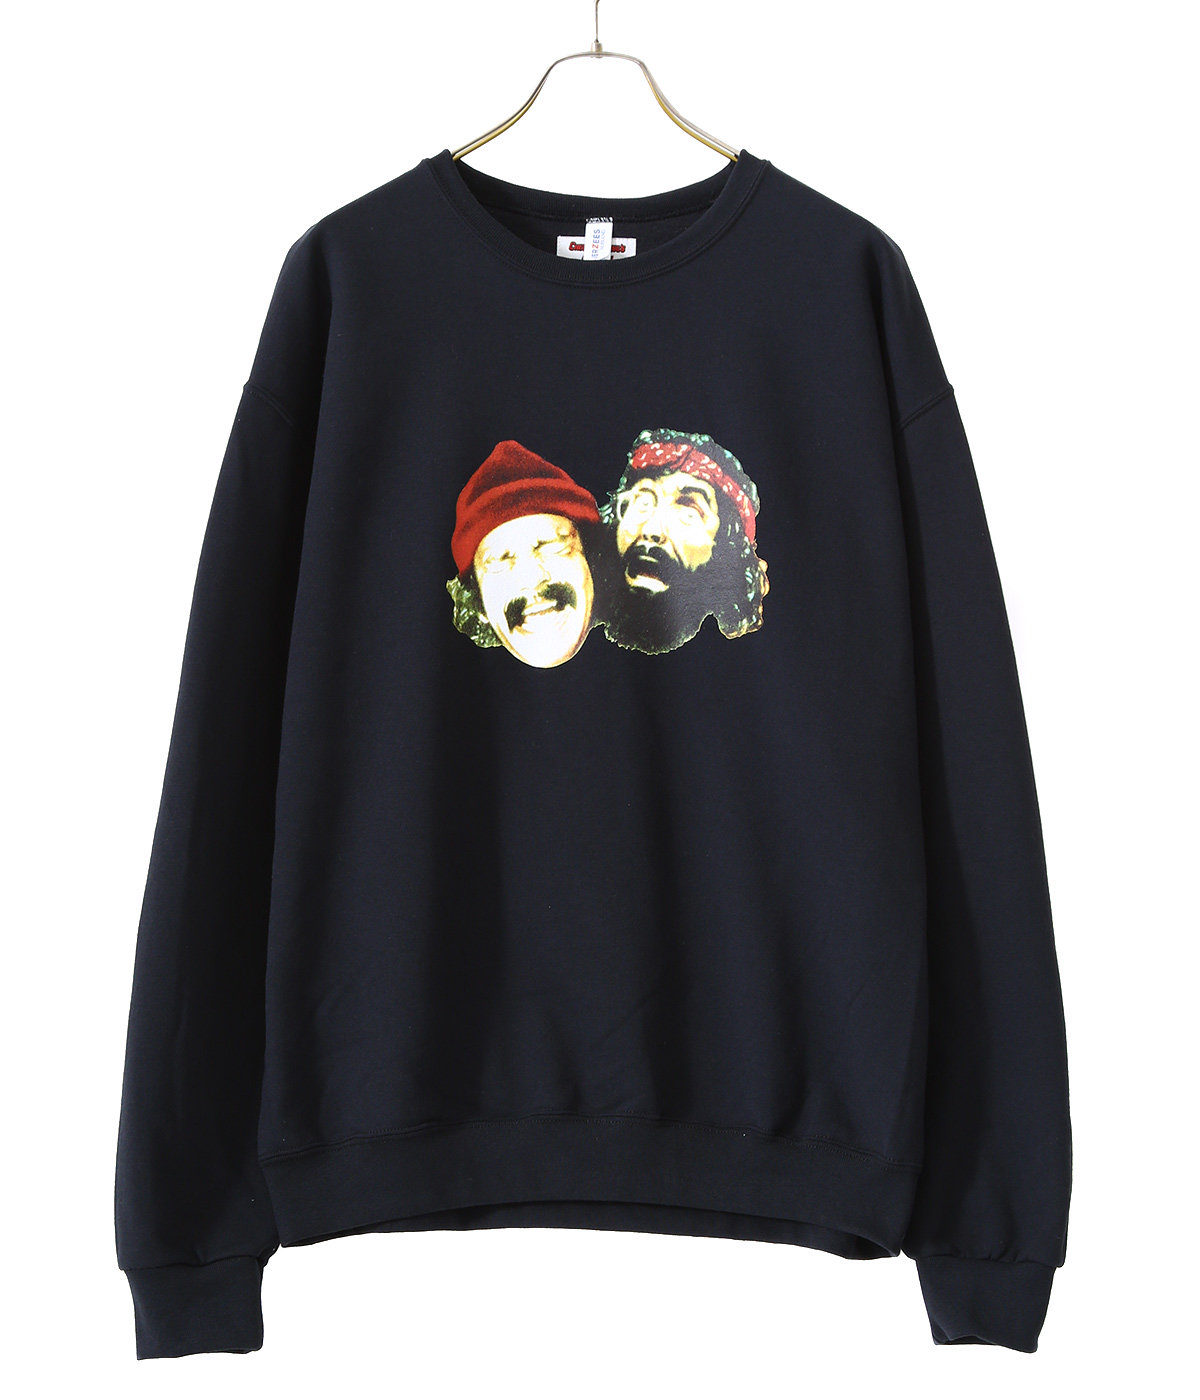 UP IN SMOKE / CREW NECK SWEAT SHIRT (TYPE-2)